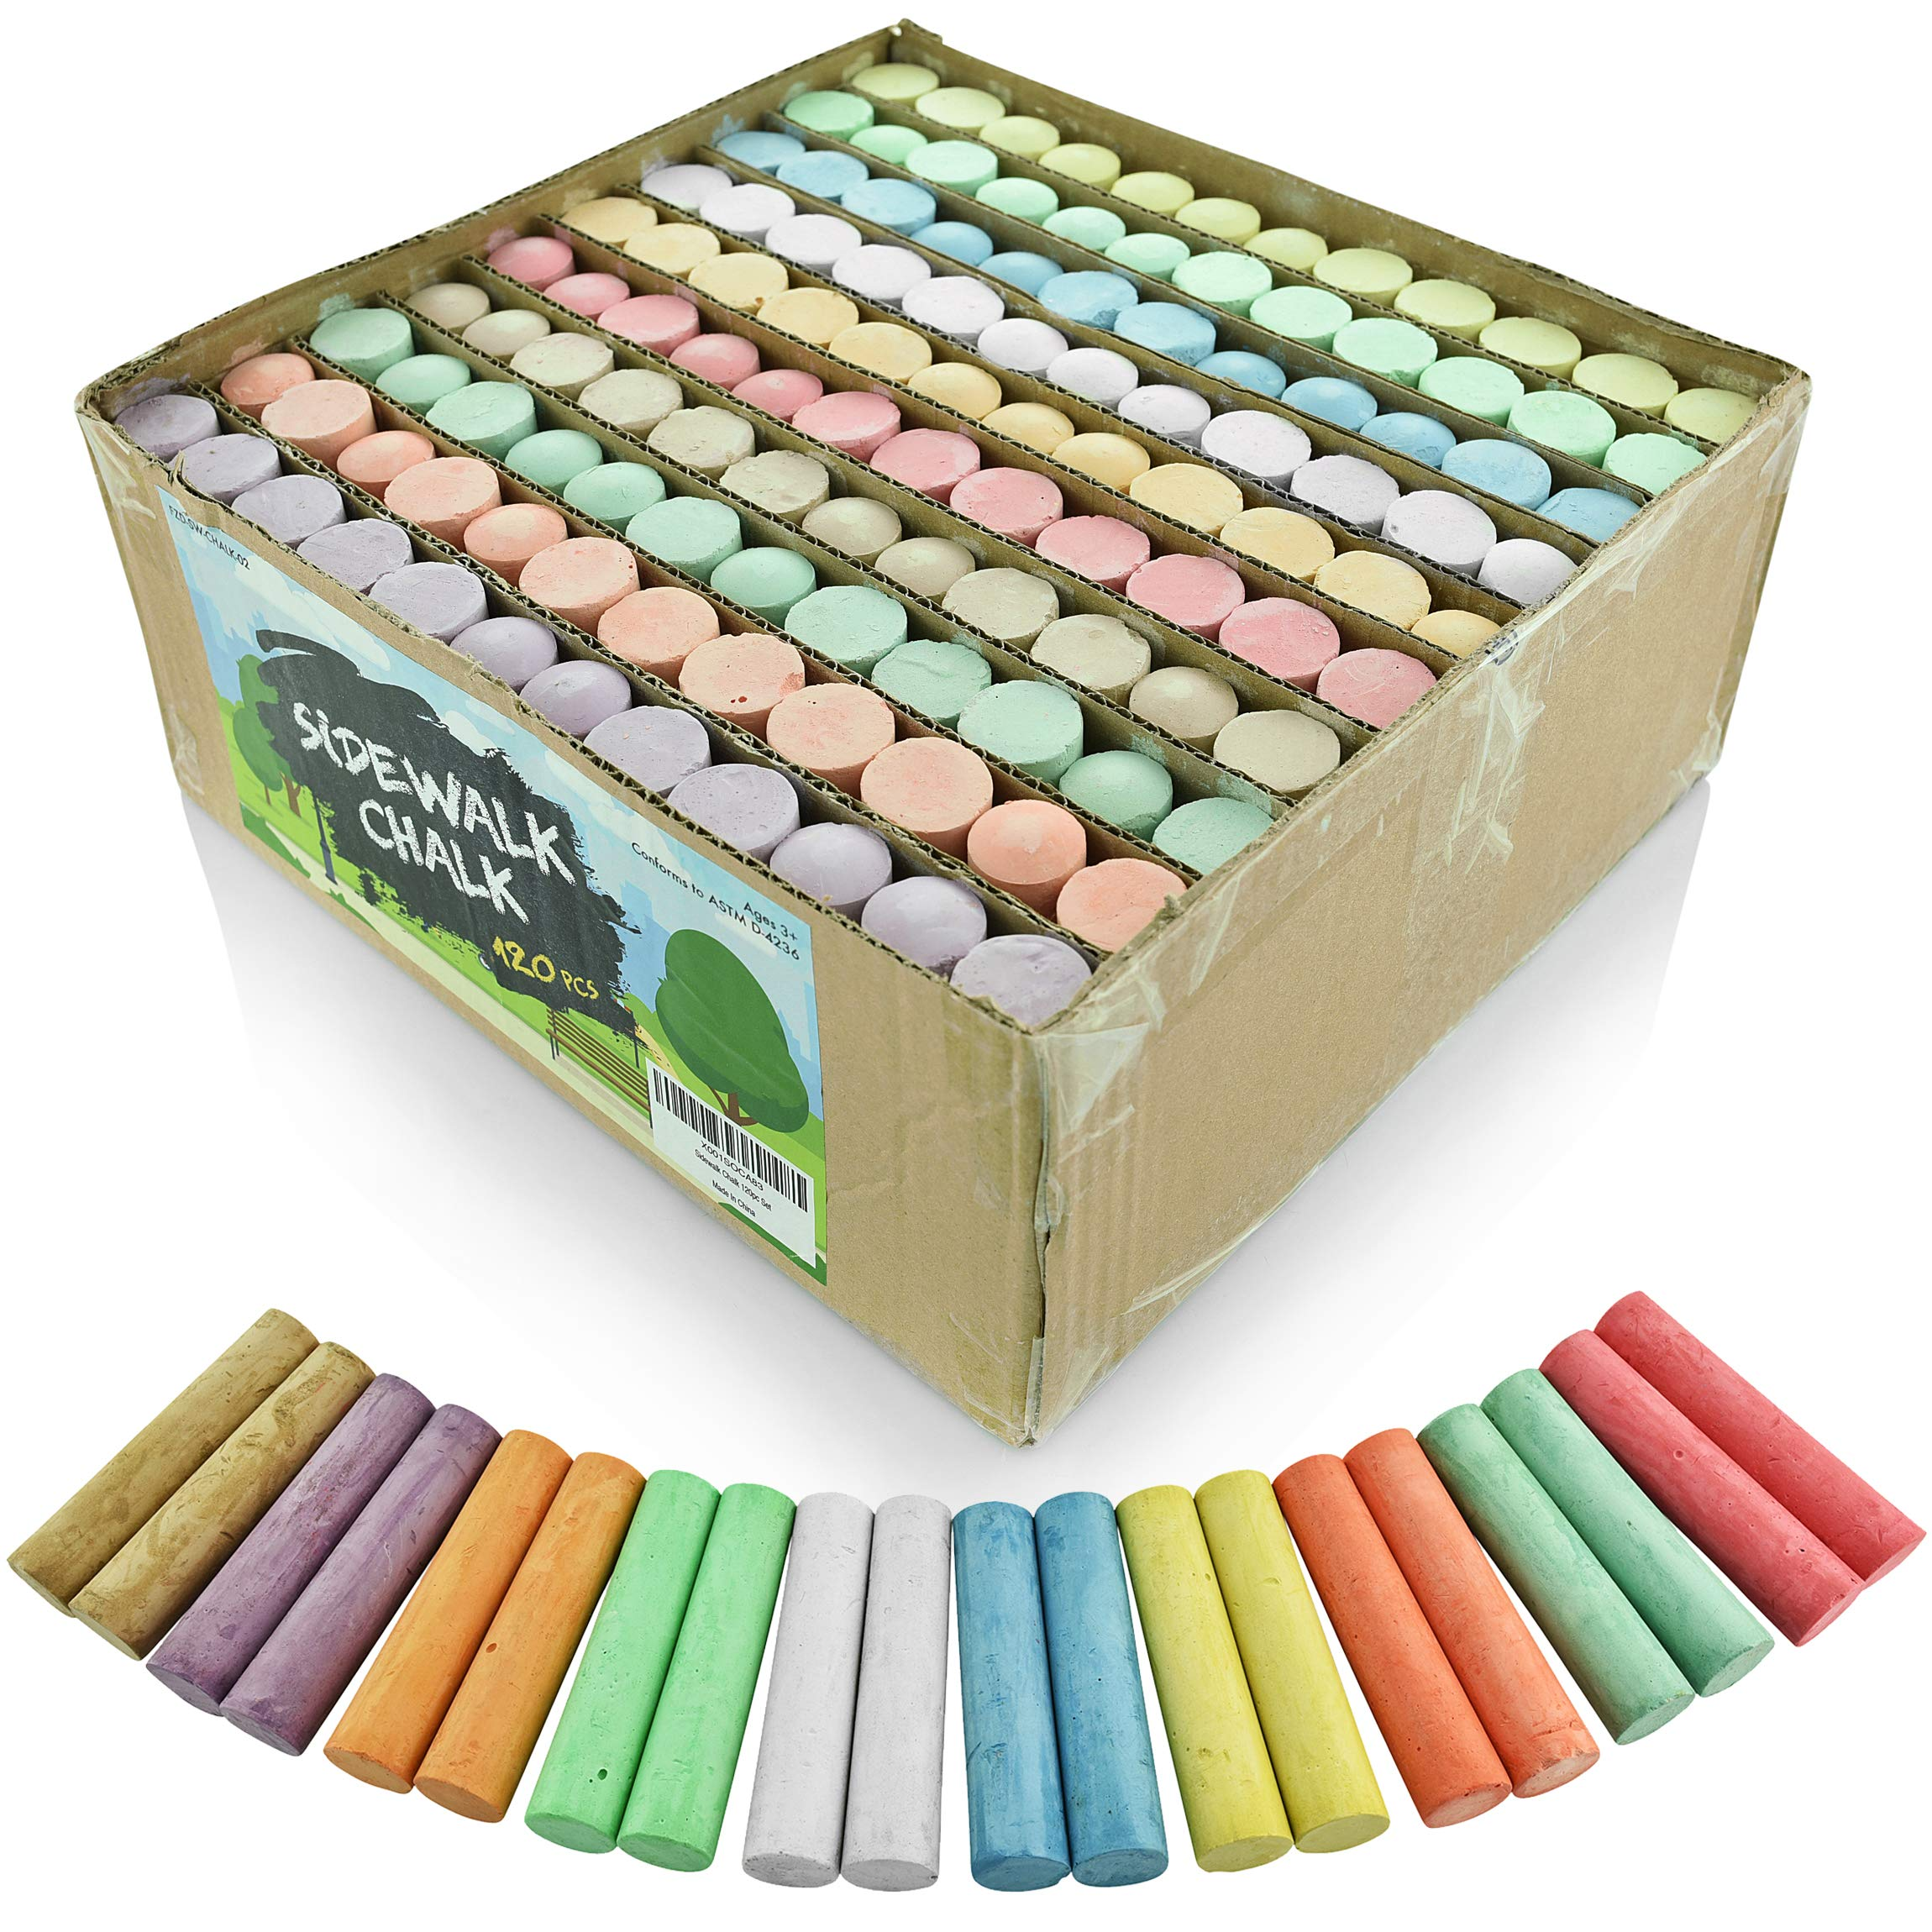 Fat Zebra Designs Sidewalk Chalk Set – Pack of 120 Multi-Color Jumbo Street Chalks – 10 Bright & Cheerful Colors – Nontoxic, Washable Tapered Chalks for Teachers and Schools - 1 x 4 Inches